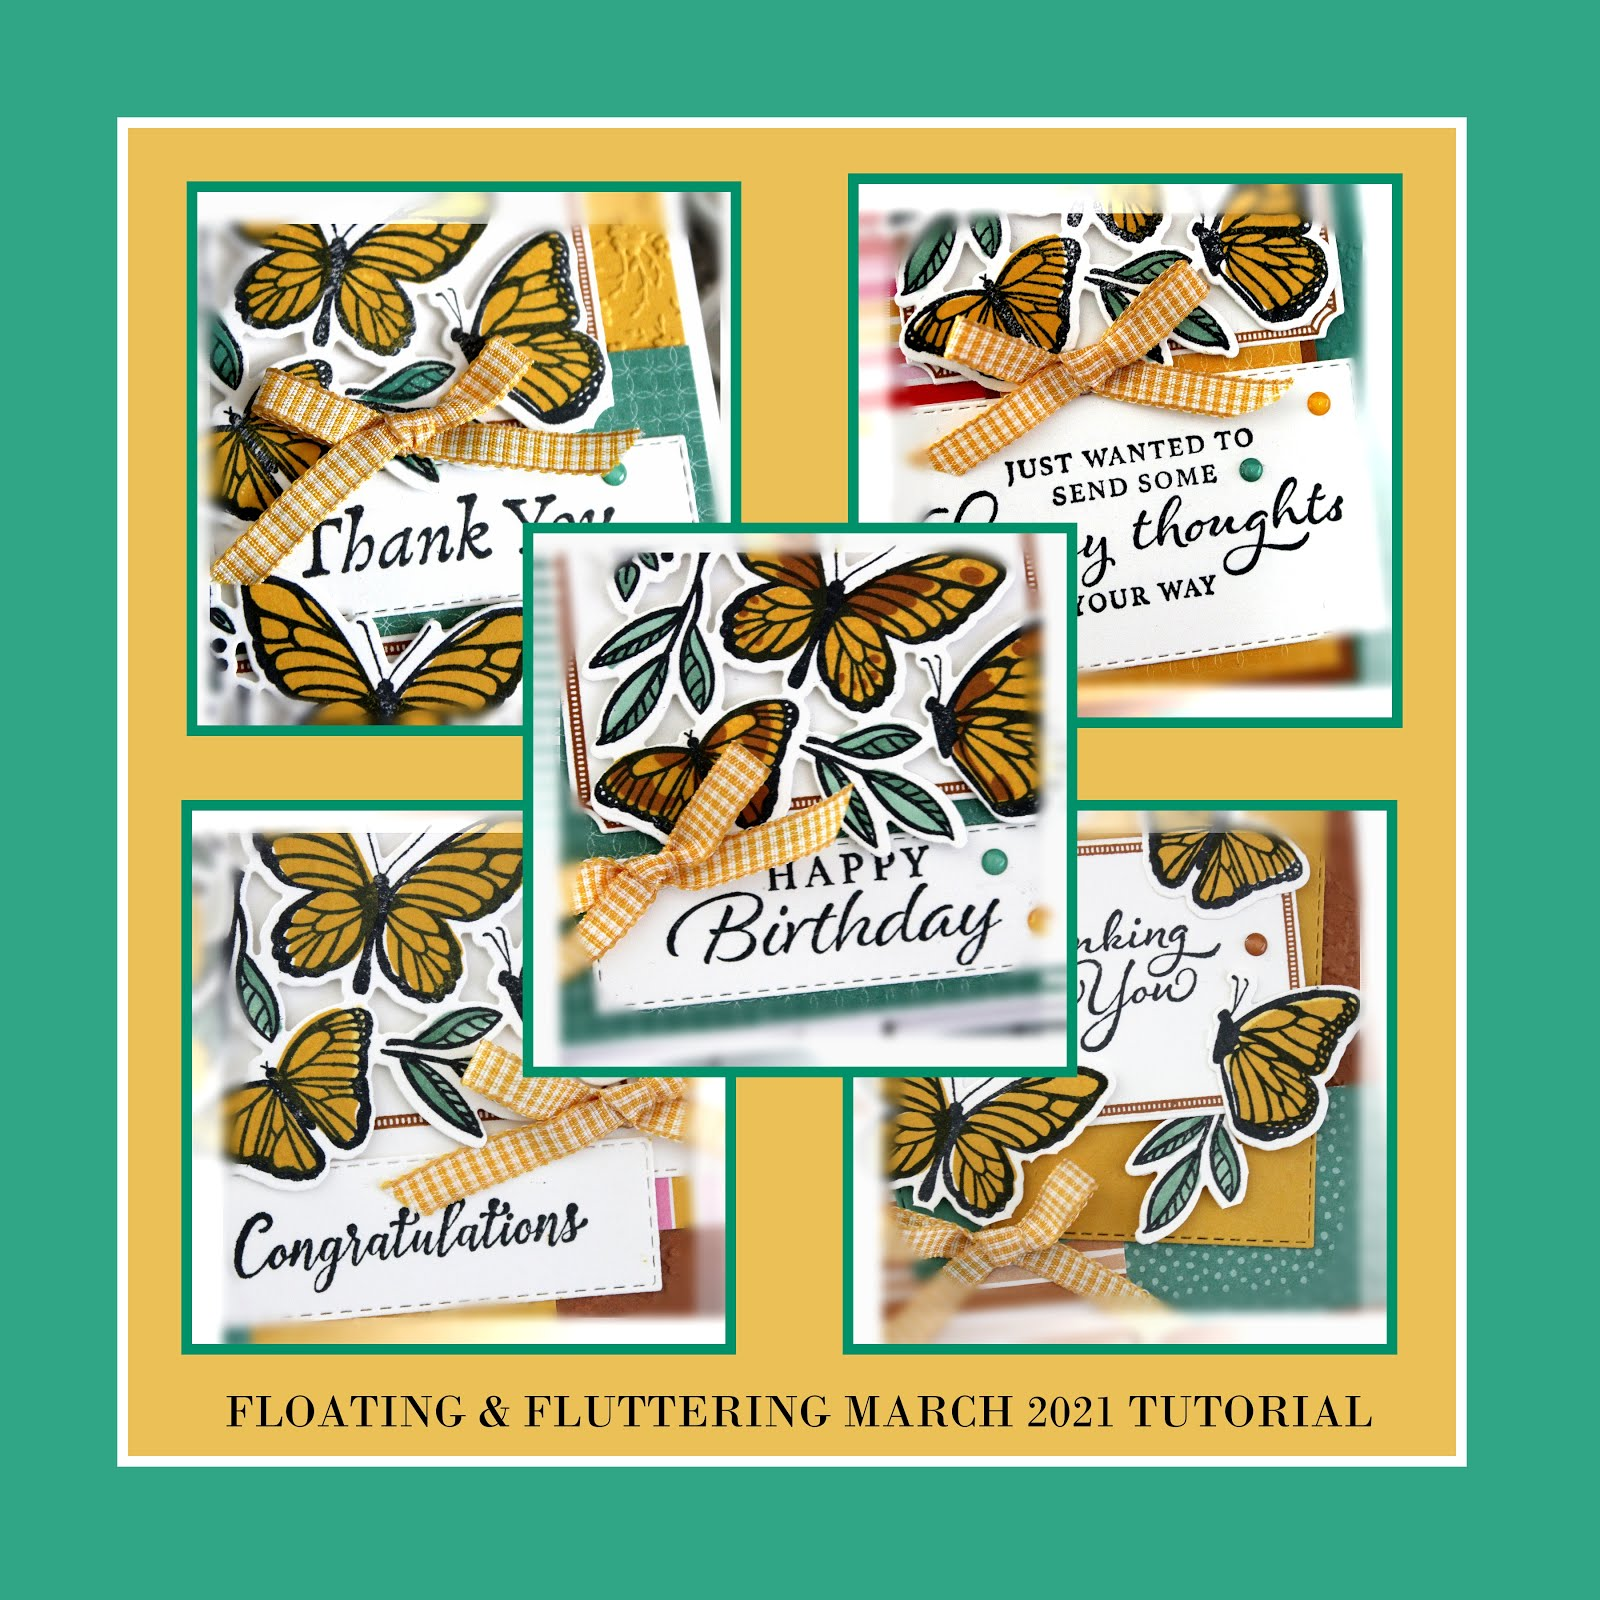 March 2021 Floating & Fluttering Tutorial